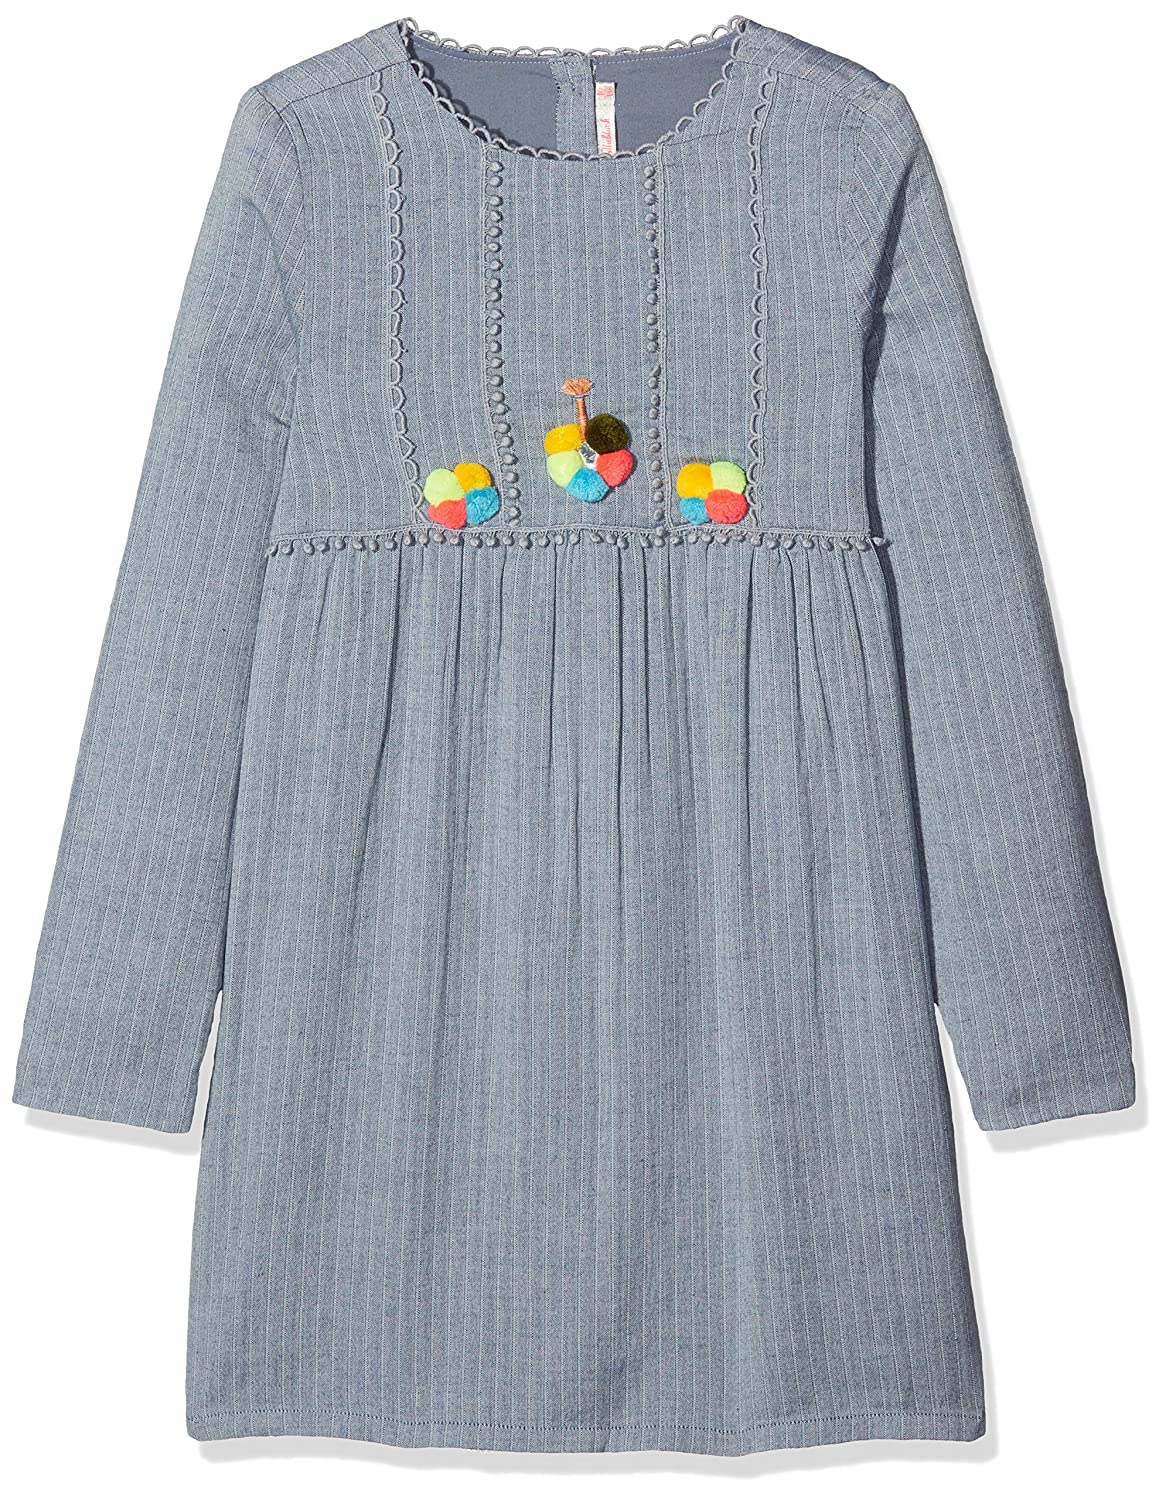 Bleu (Denim bleu) 8 ans  Billiebleush Robe Fille